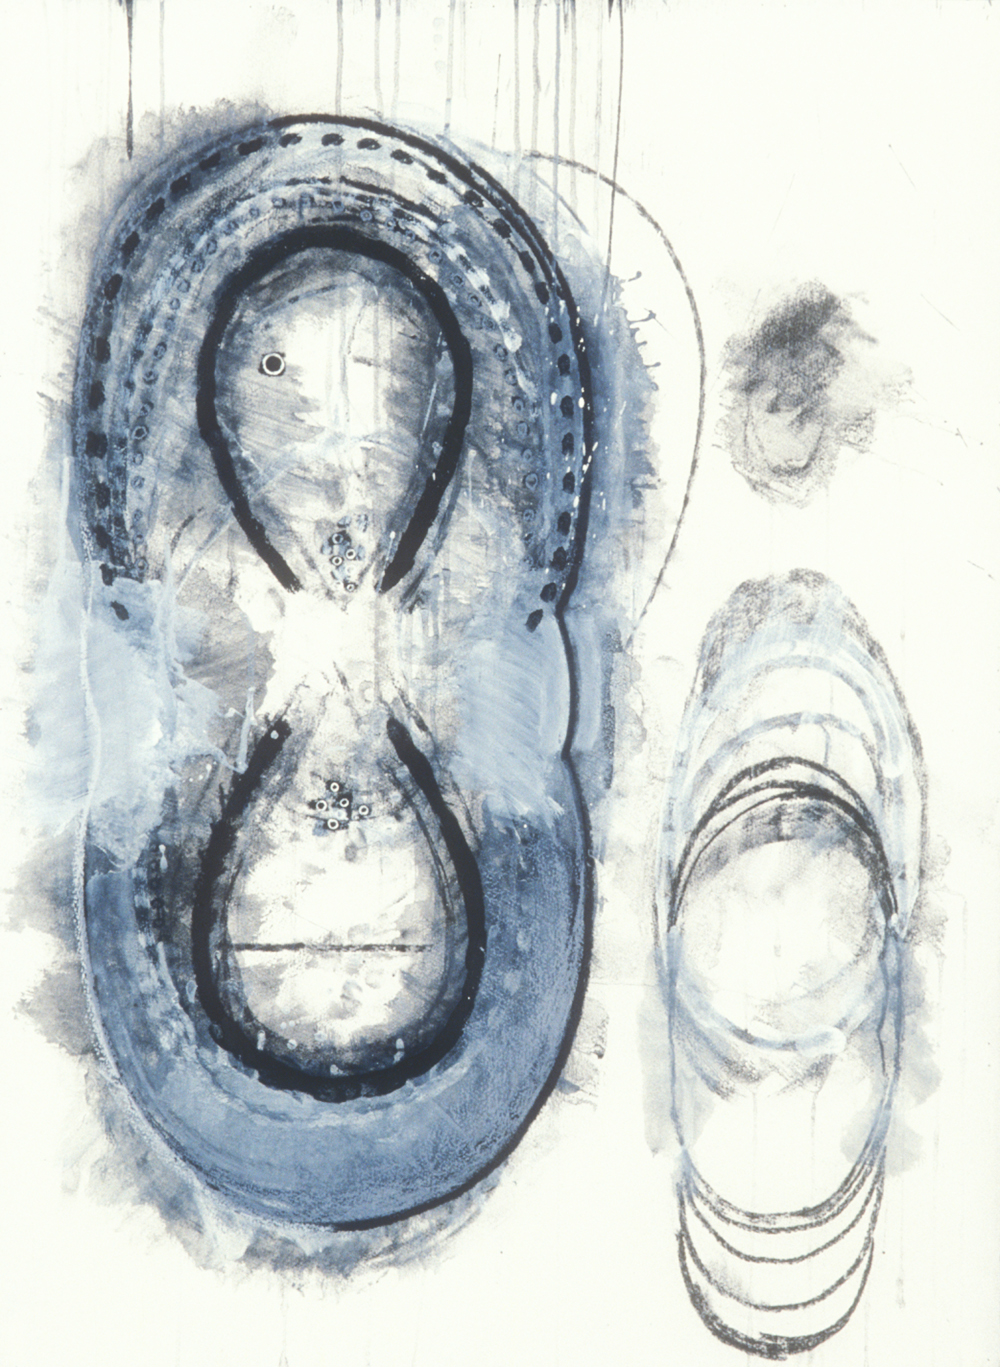 Elemental 9  , 1989, mixed media on paper, 29.5 x 21.5 in.